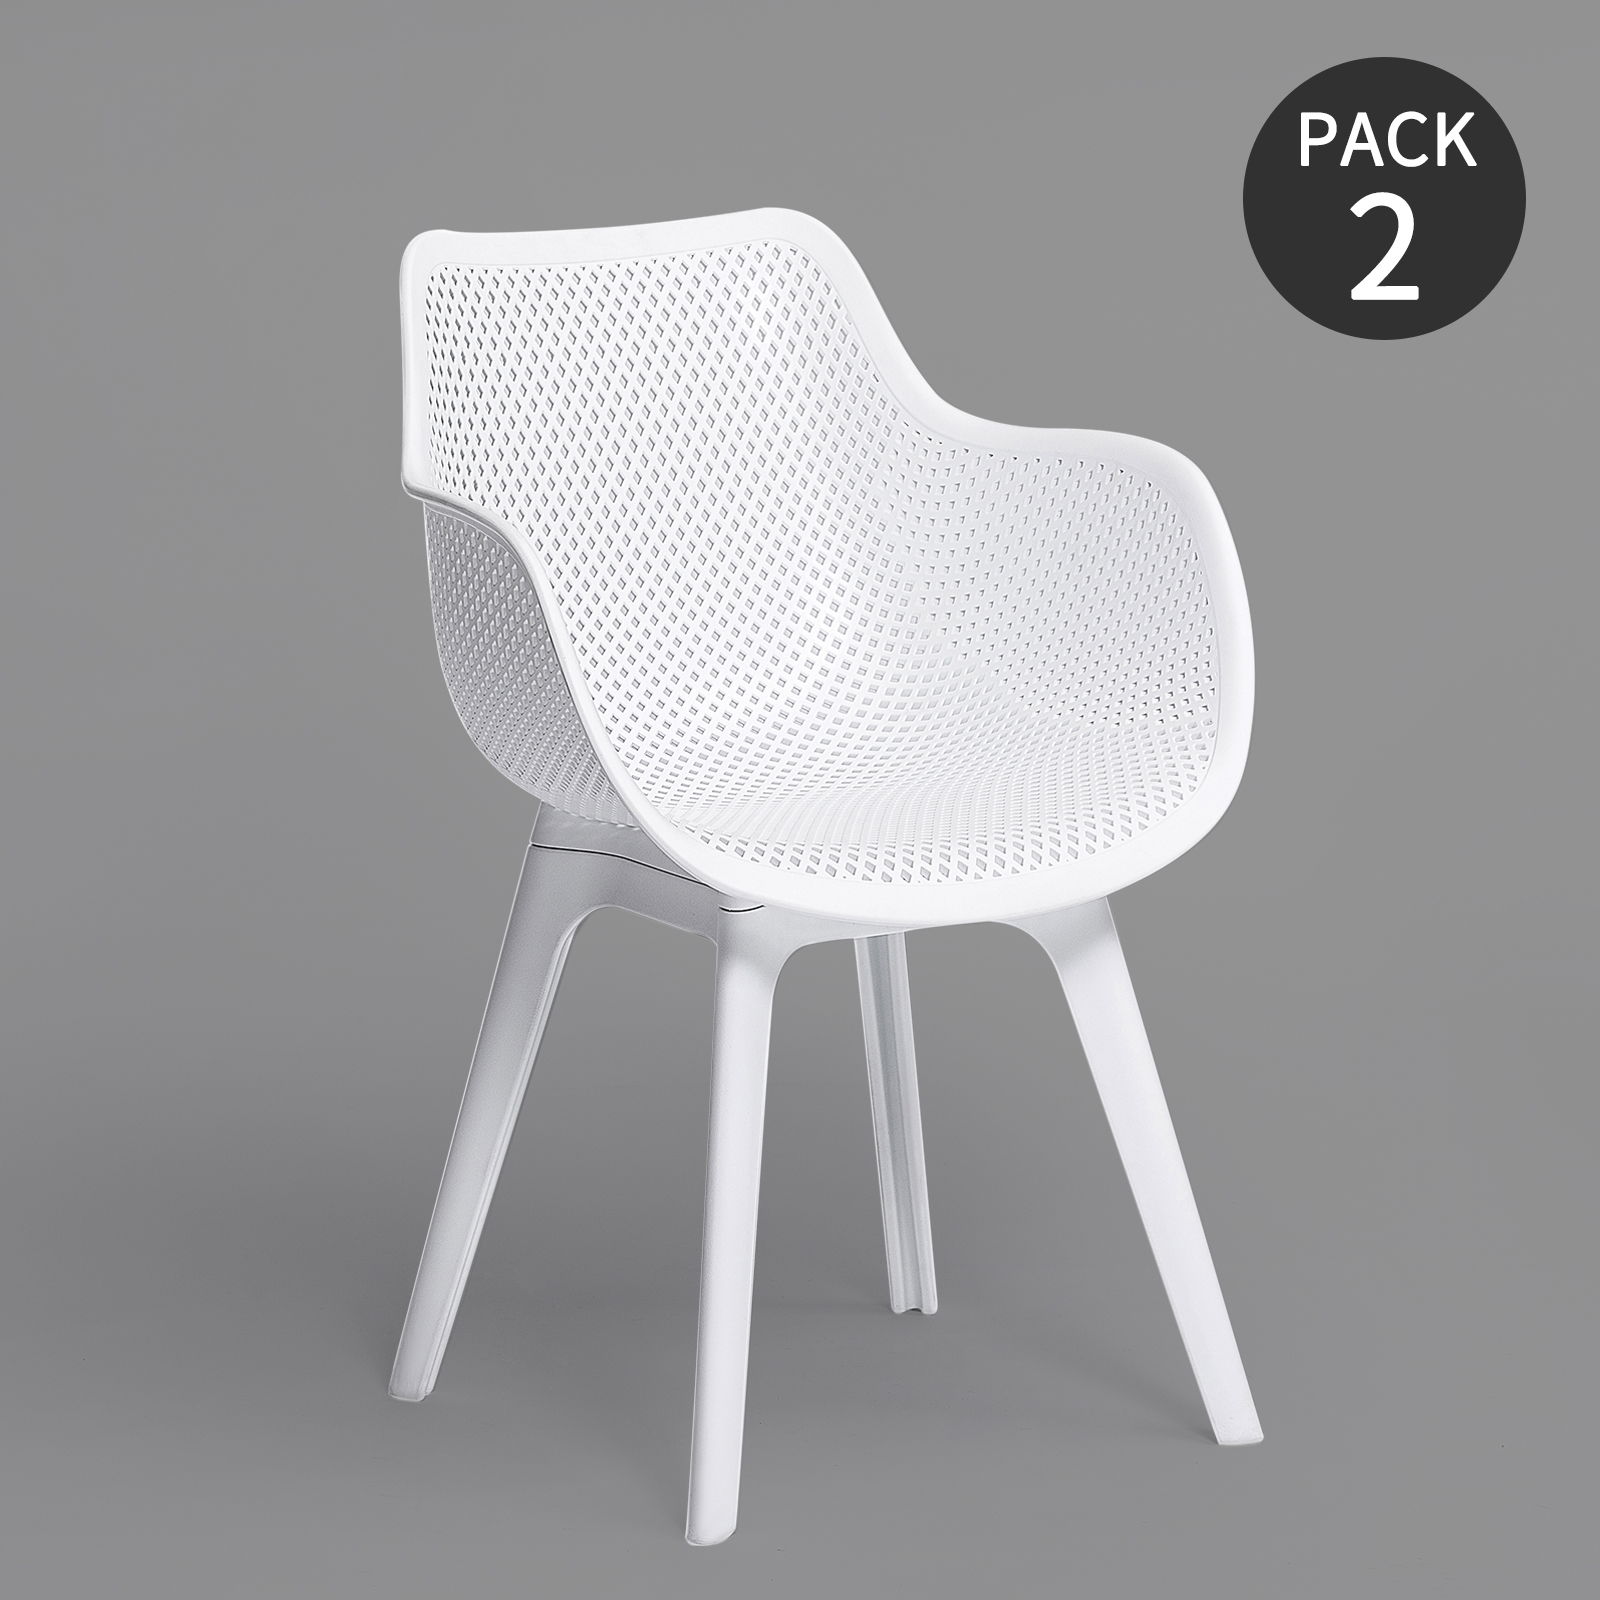 FURGLE 2Pcs Nordic Dining Chair Garden Chair With Polyester Legs